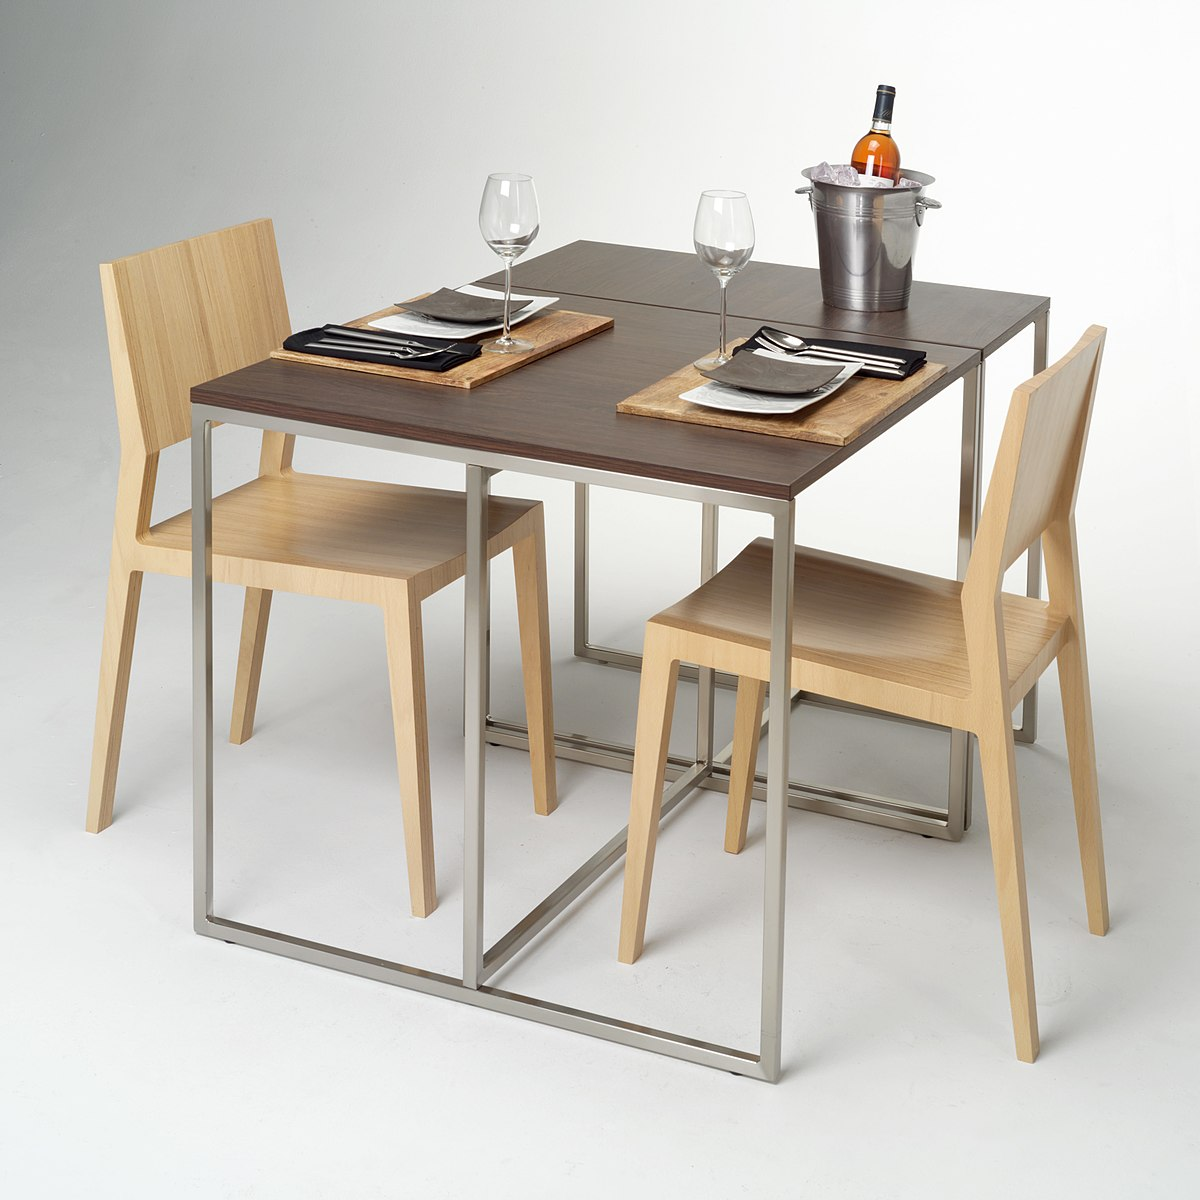 Furniture Wikipedia - Table and chair design for restaurant